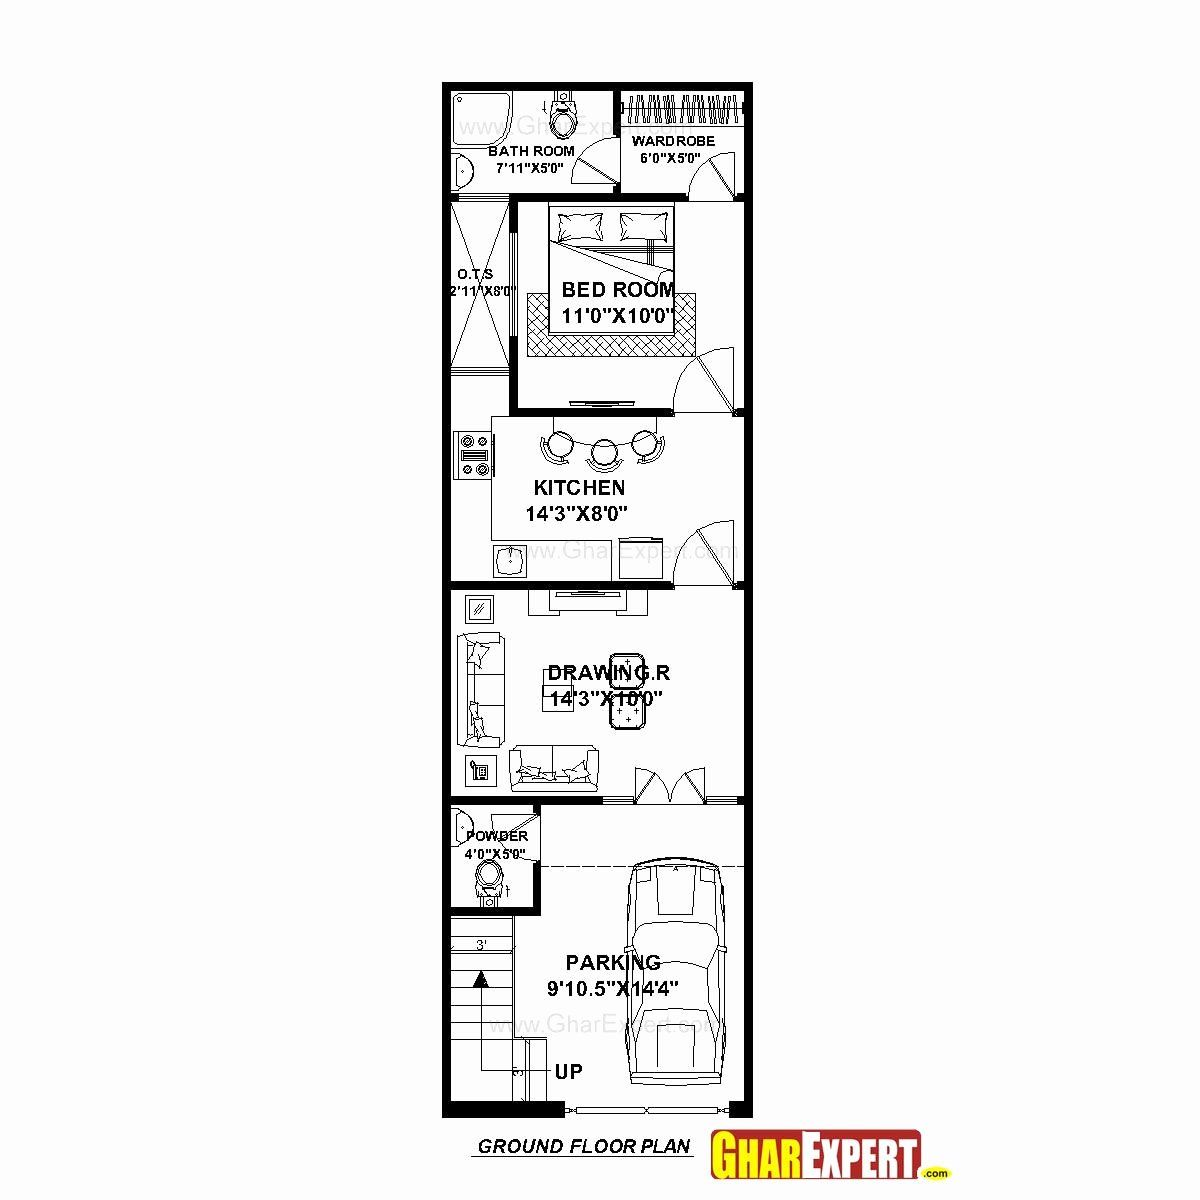 Building Planning And Drawing Book For Civil Engineering Pdf Best Of Pin On D In 2020 Small Modern House Plans House Plans With Pictures Narrow House Plans